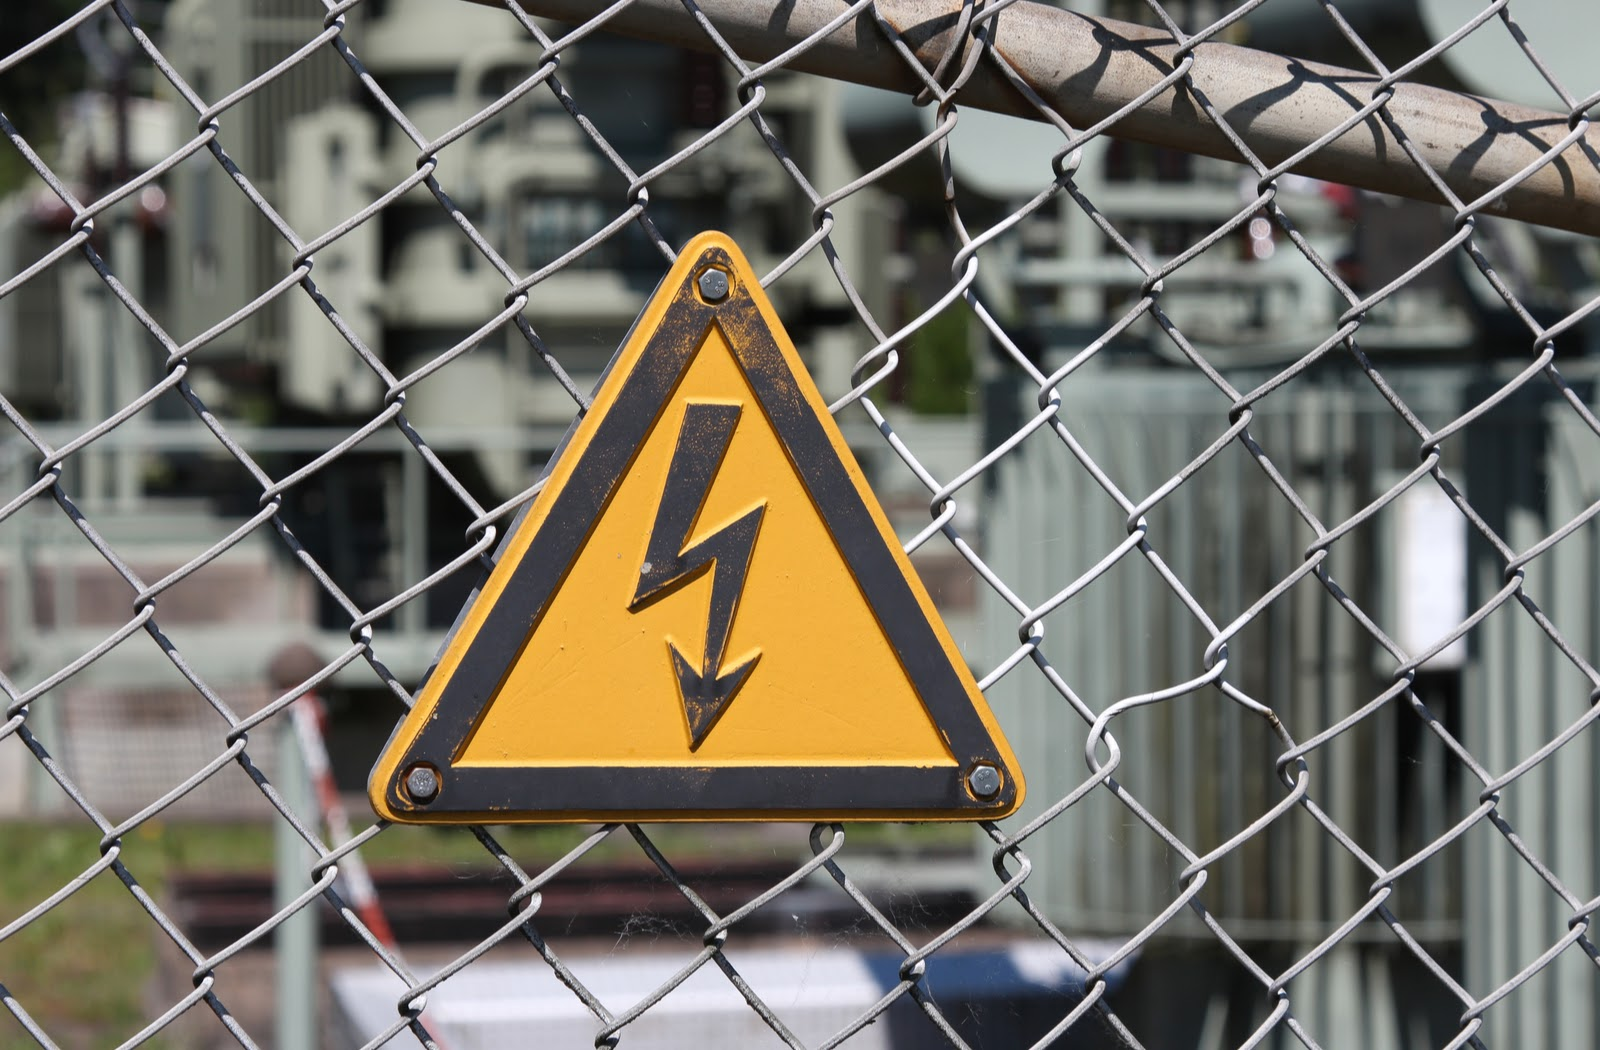 Safety signs showing electrical shock warning